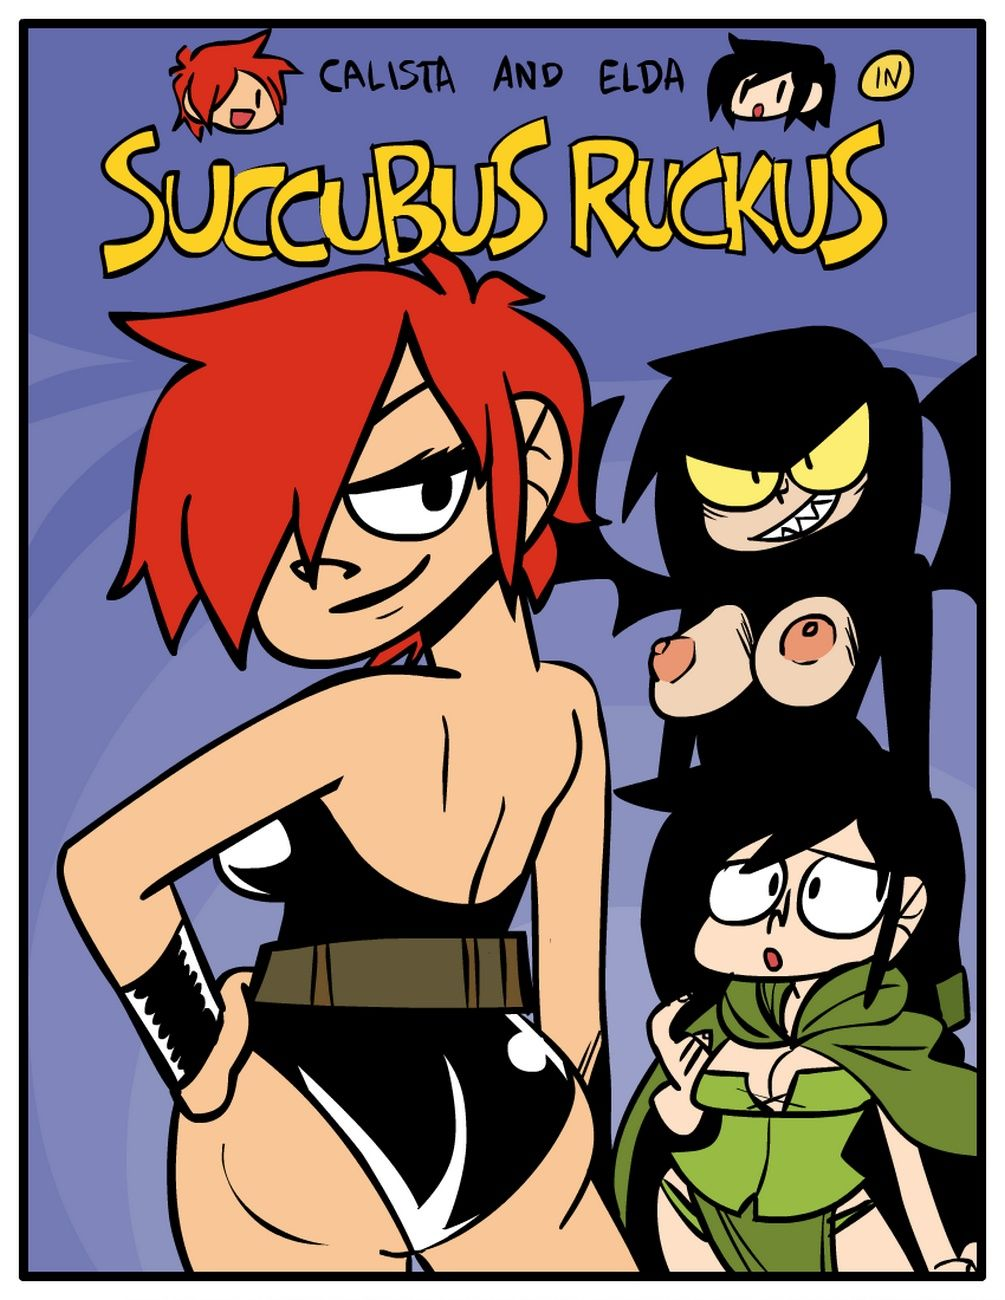 Succubus Ruckus- Calista and Elda image 1